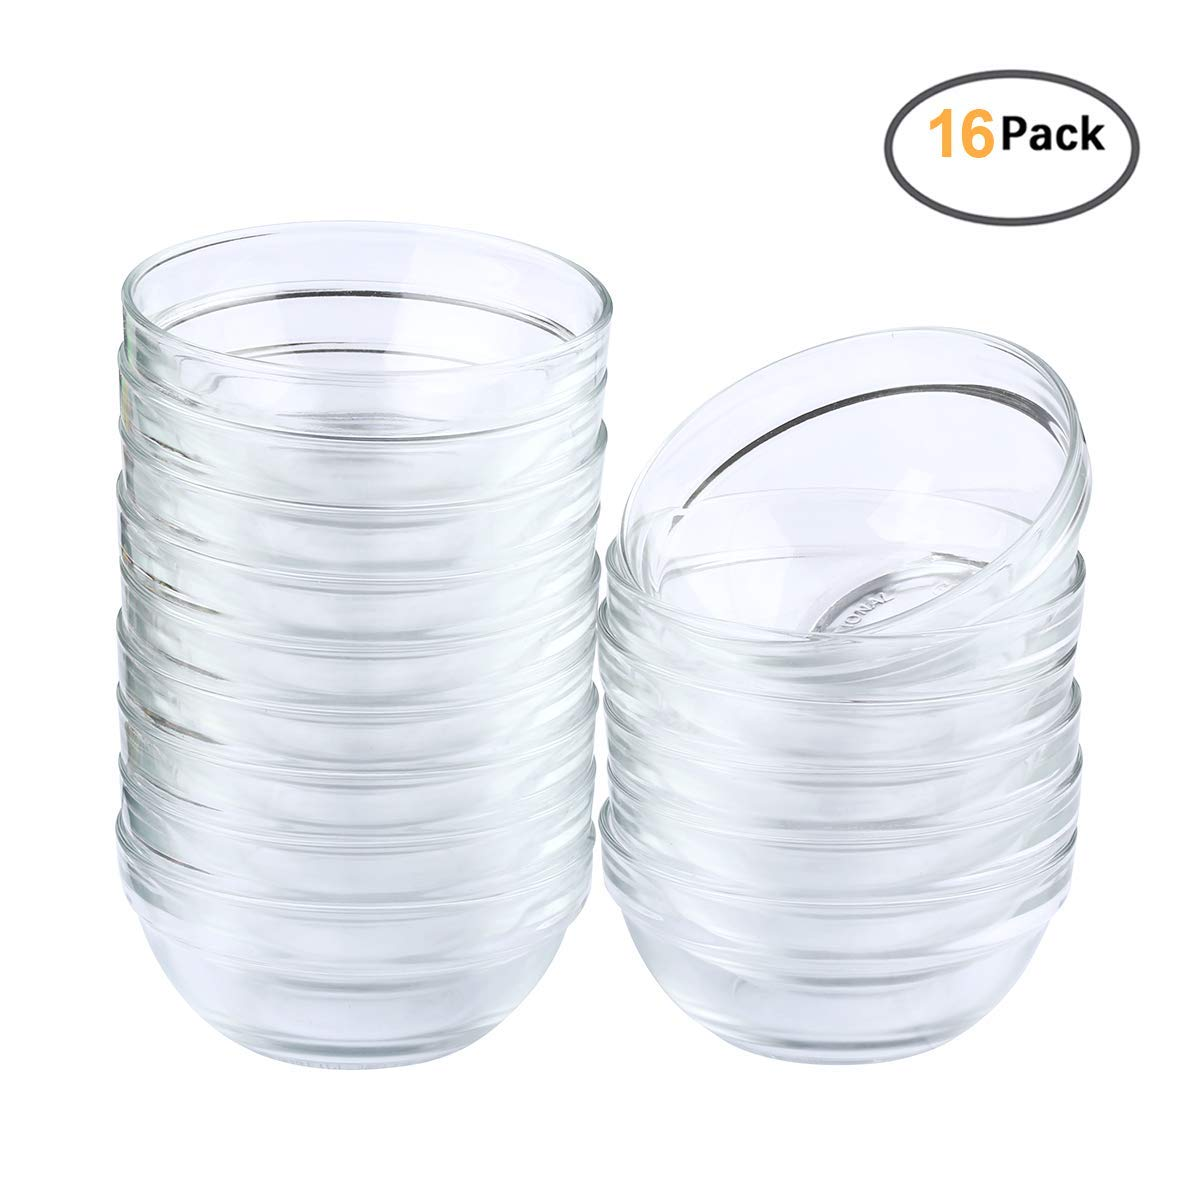 Maredash Mini Bowls 3.5 Inch Glass Bowls for Kitchen Prep, Dessert, Dips, and Candy Dishes,4oz Stackable Dishware safe,Set of 16 (combination)